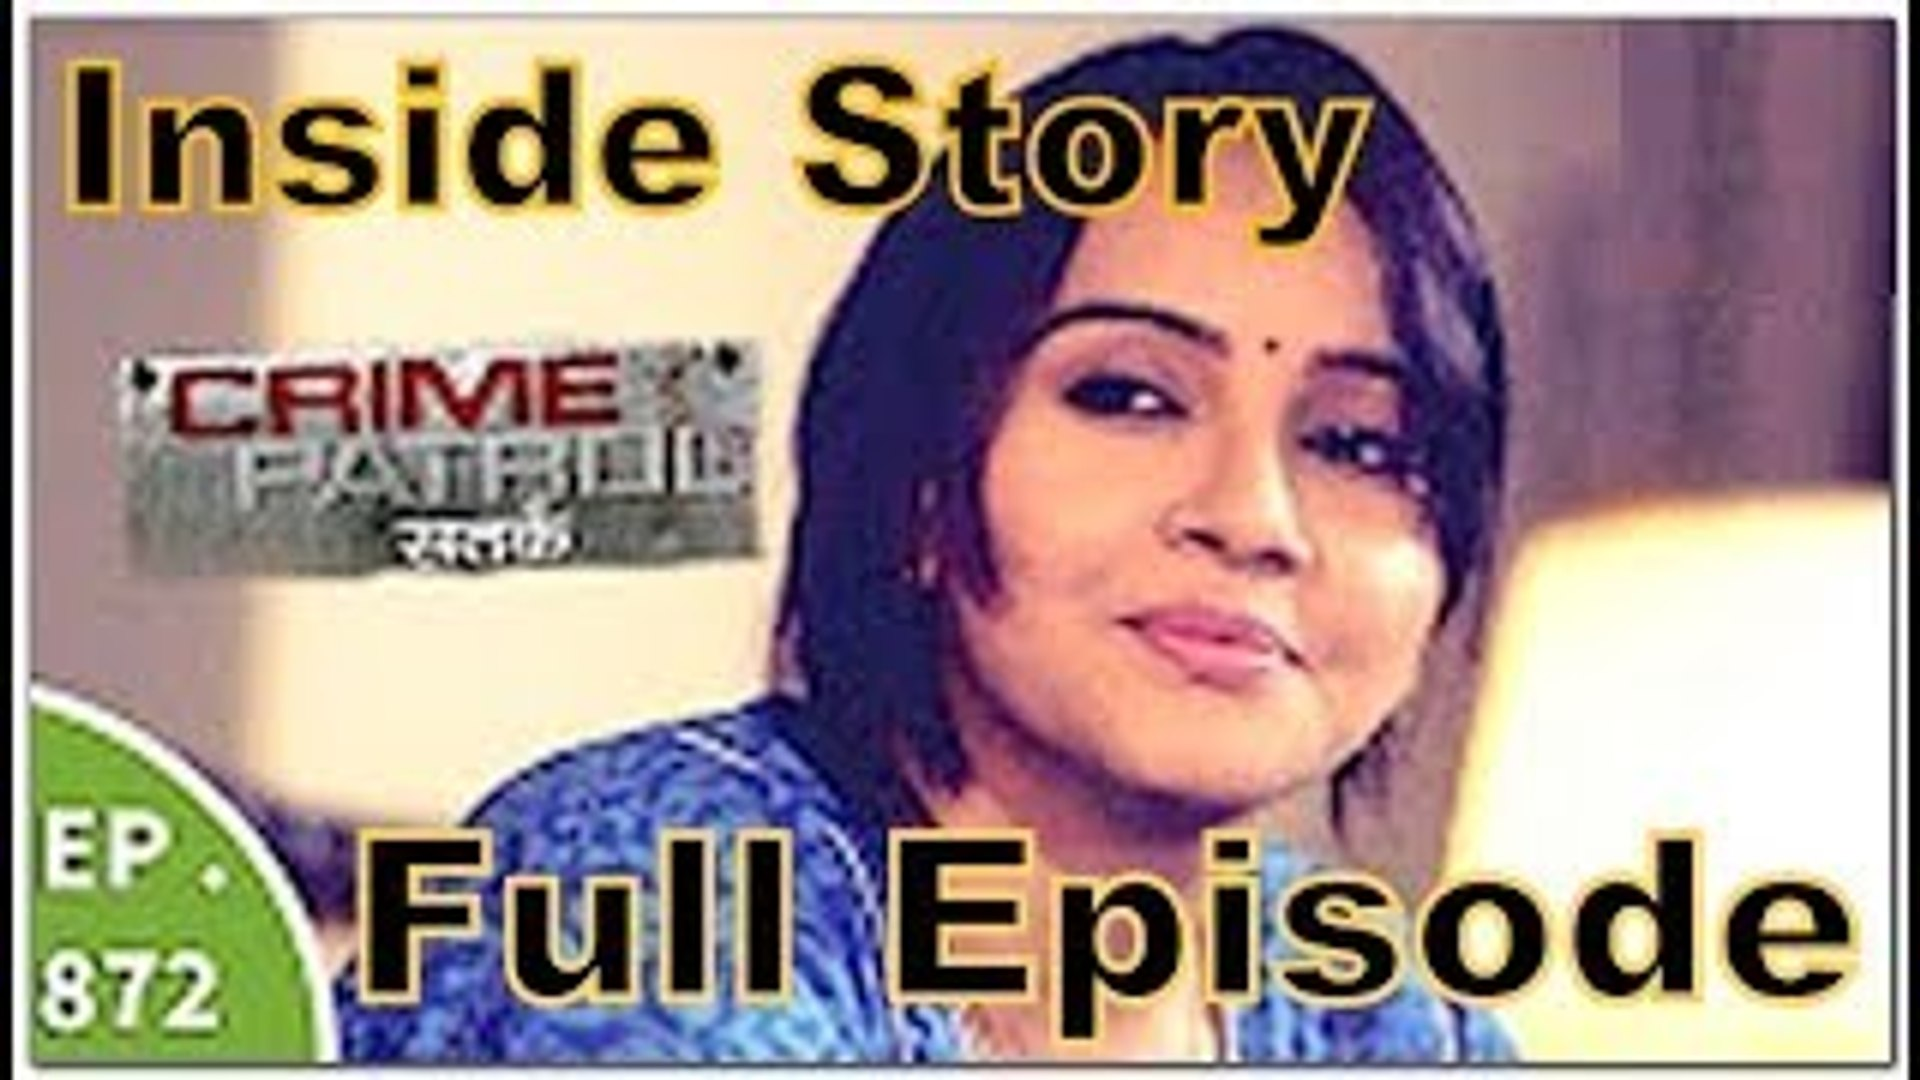 crime patrol -18th & 19th November - case 72 Ep 872 & ep 873 full episode -  inside story & detail